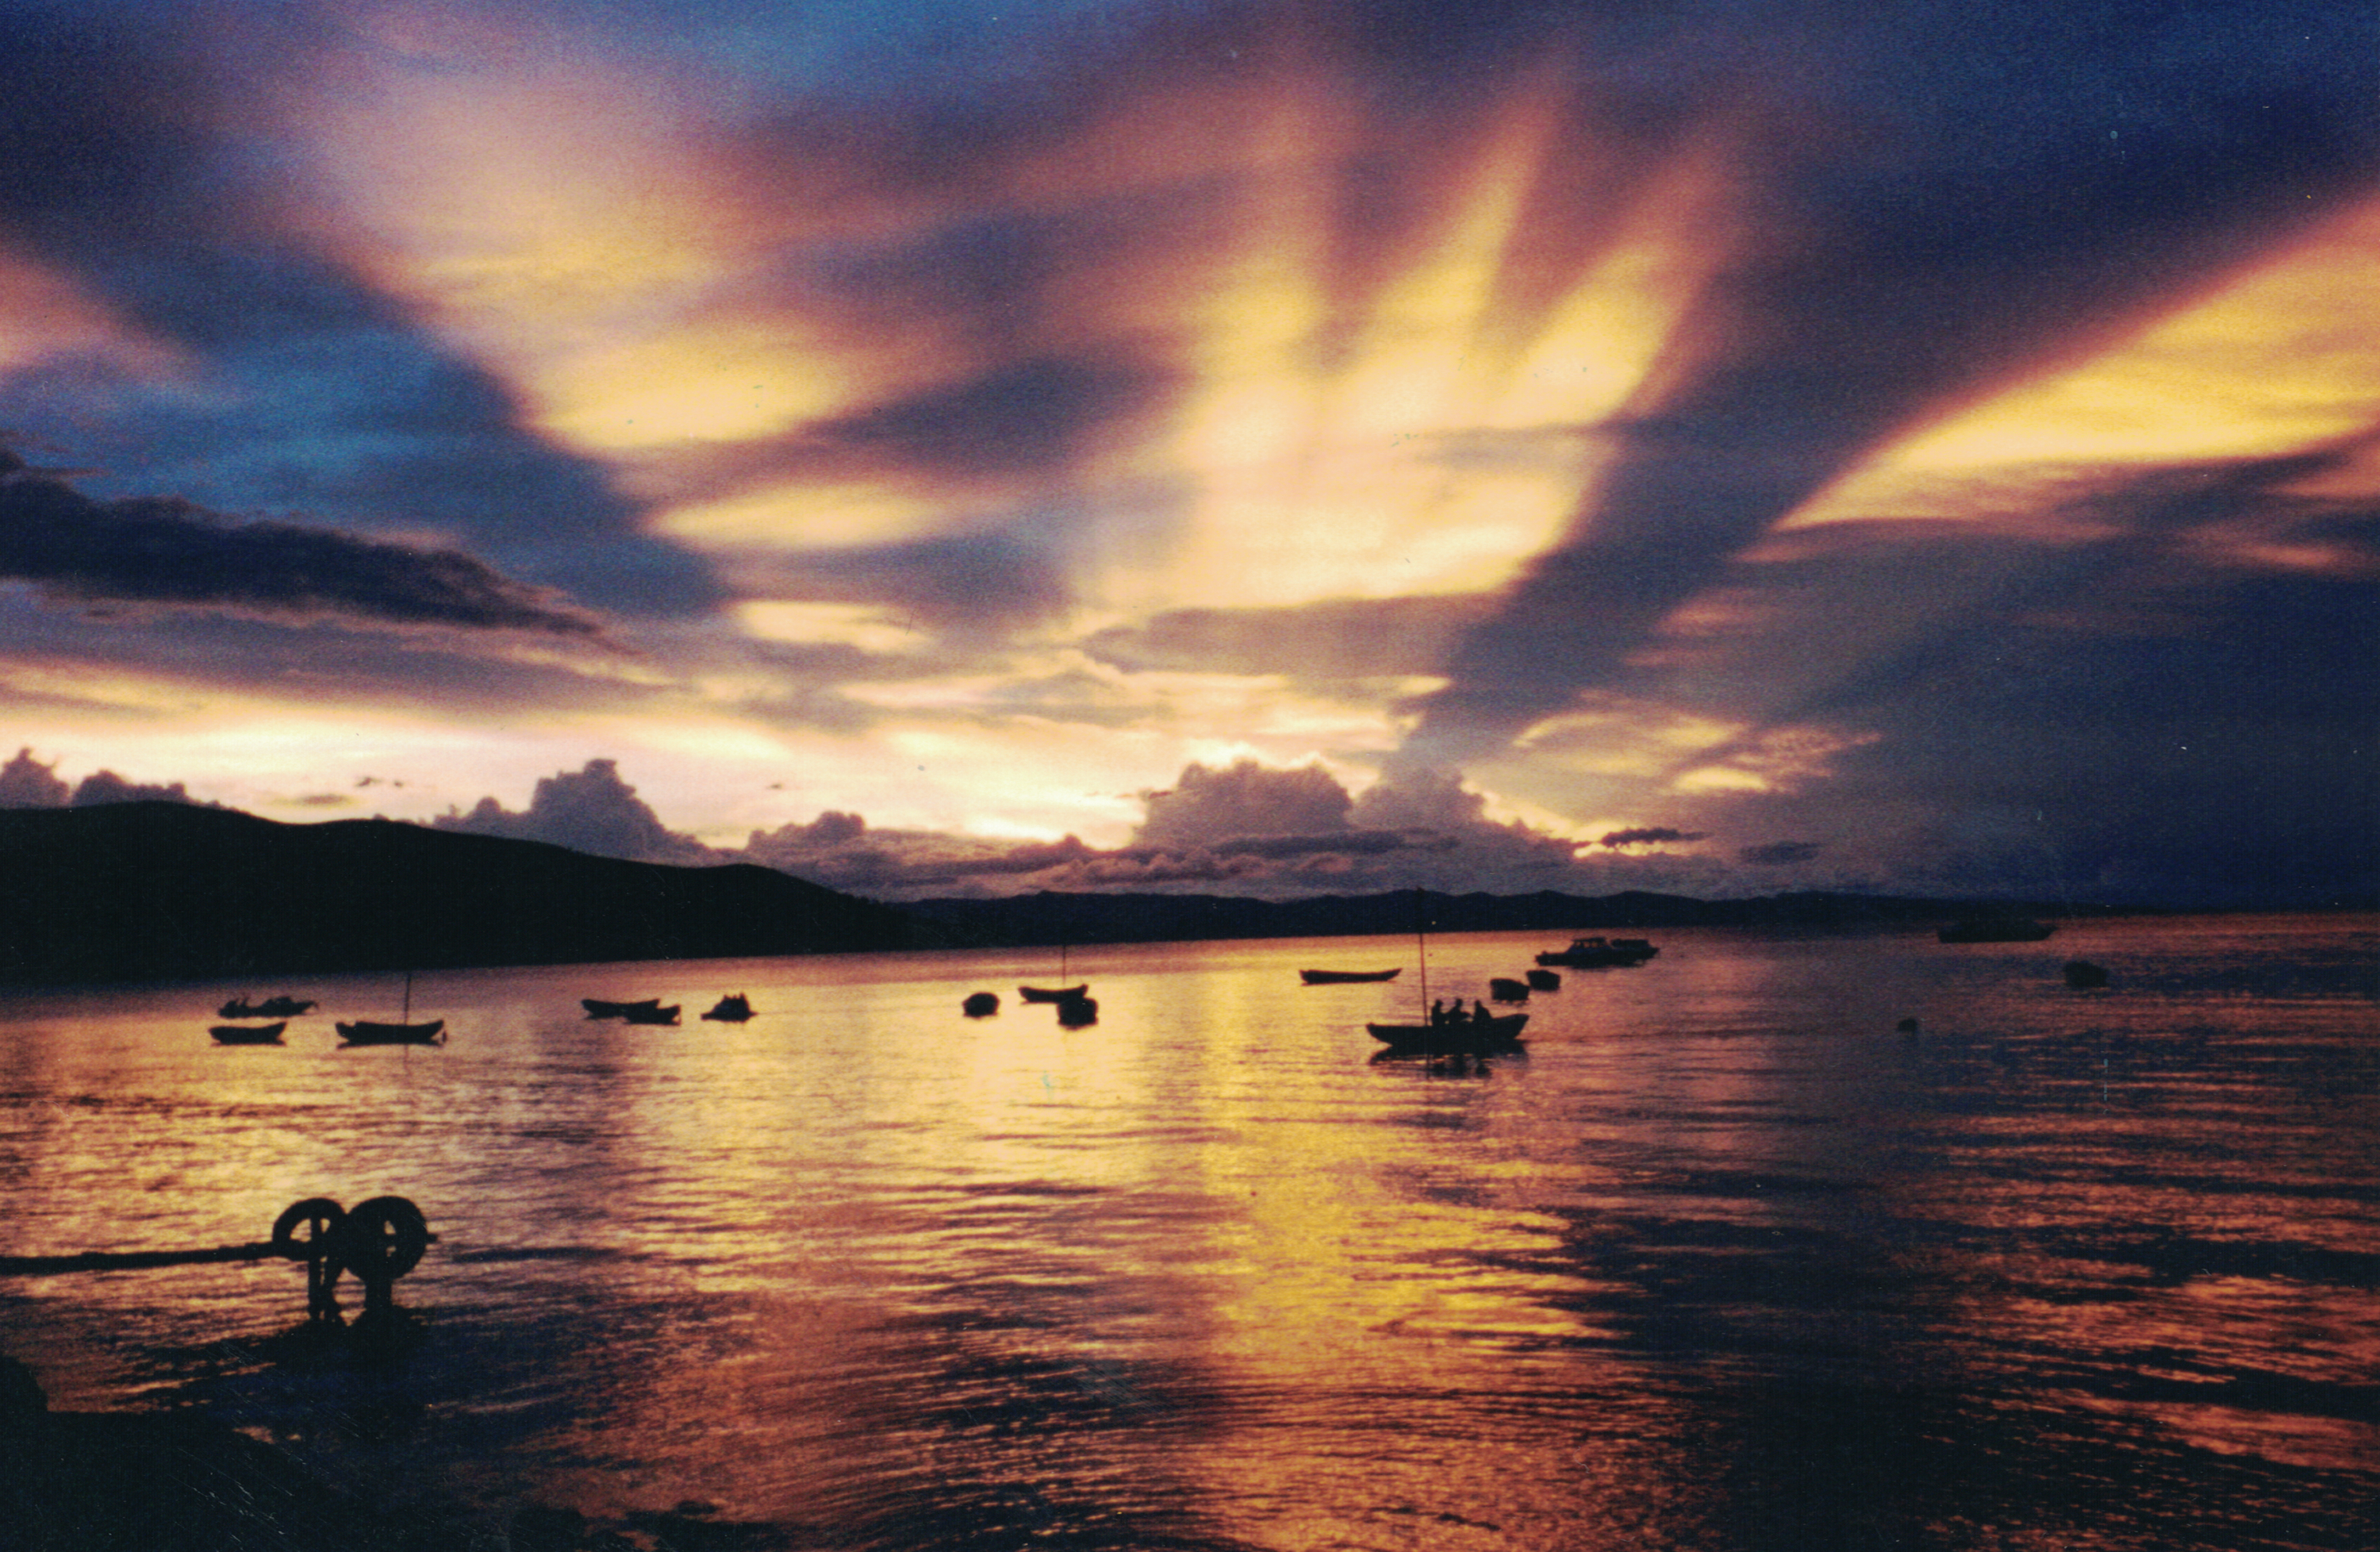 photograph of lake titicaca at mid-sunset